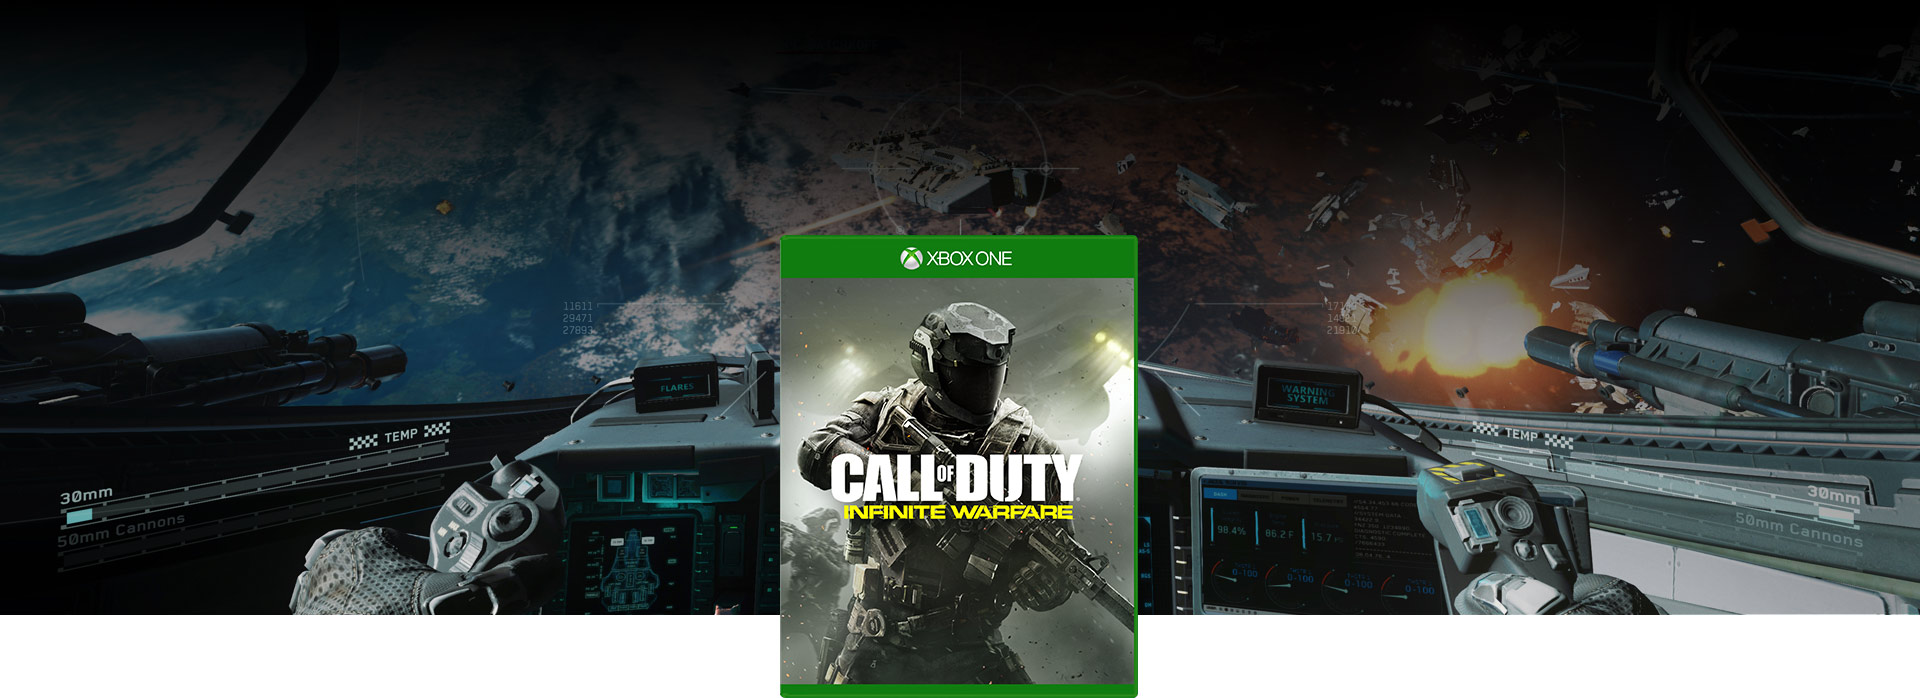 Image de la boîte de Call of Duty Infinite Warfare